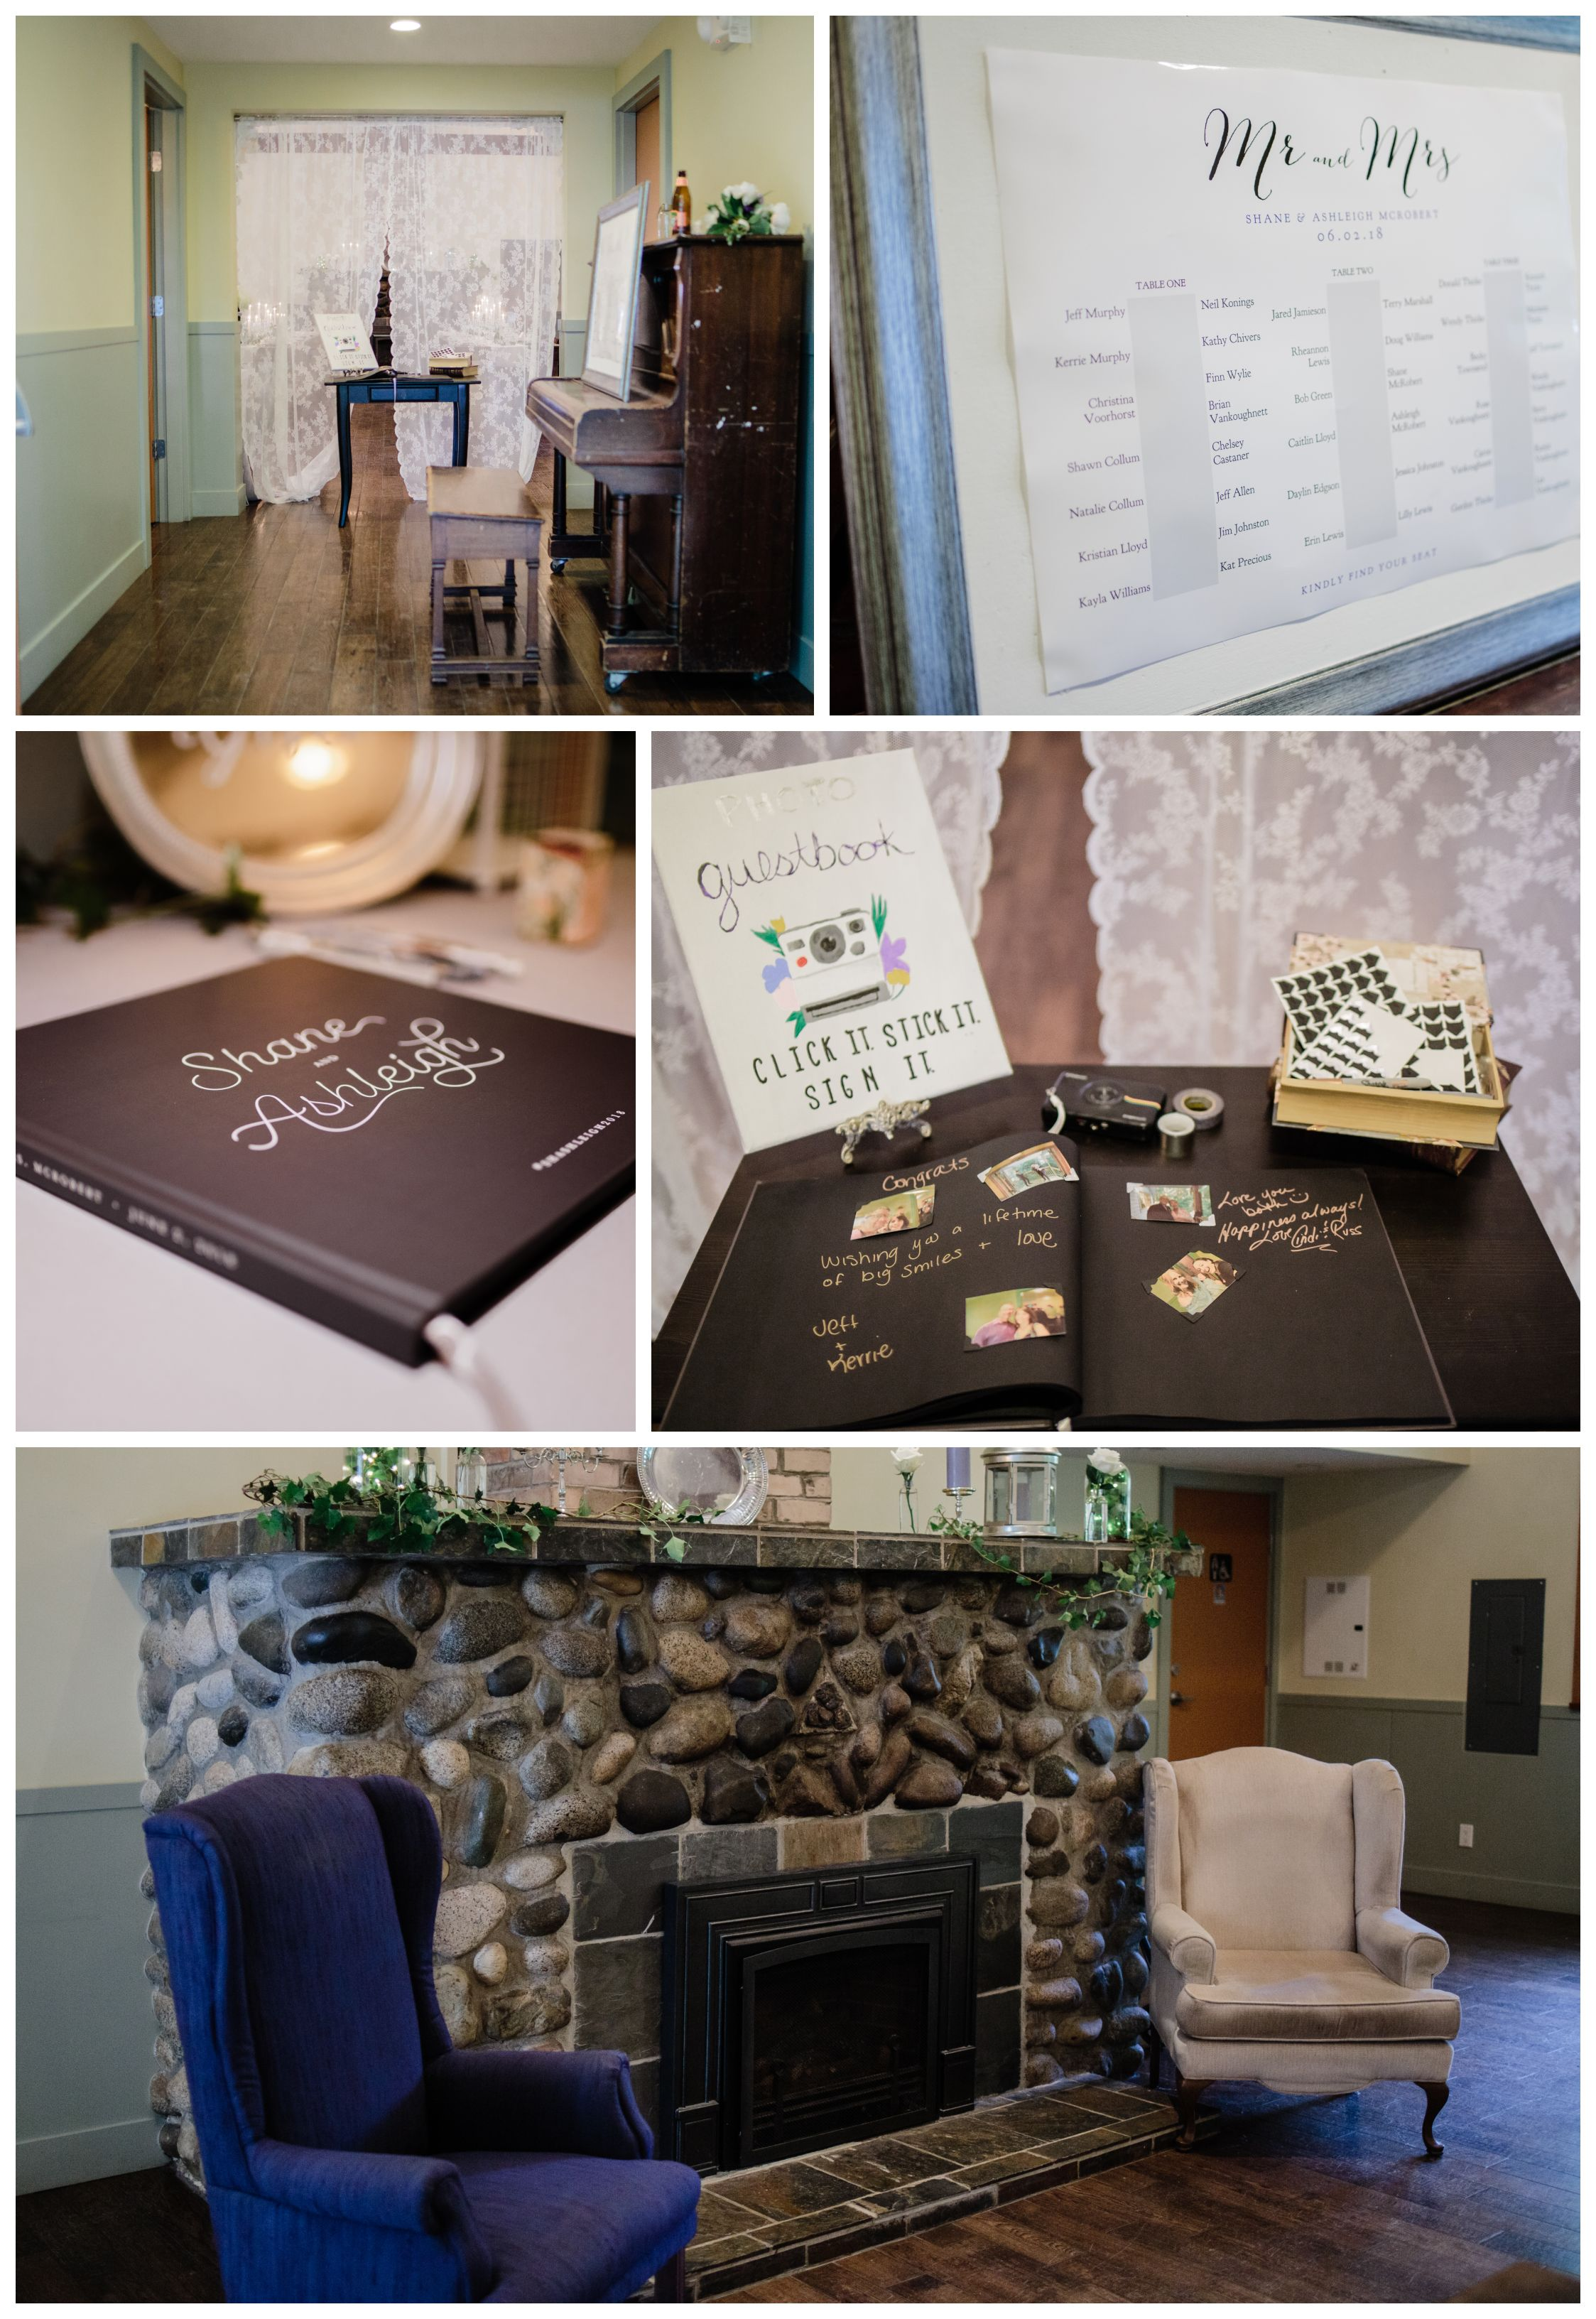 wedding details fire place and guest book before wedding reception at Kwomais Hall by Kwomais Point Park in Ocean Park Surrey by best wedding photographer from Langley Mimsical Photography Christina Voorhorst style is documentary candid and fun photos